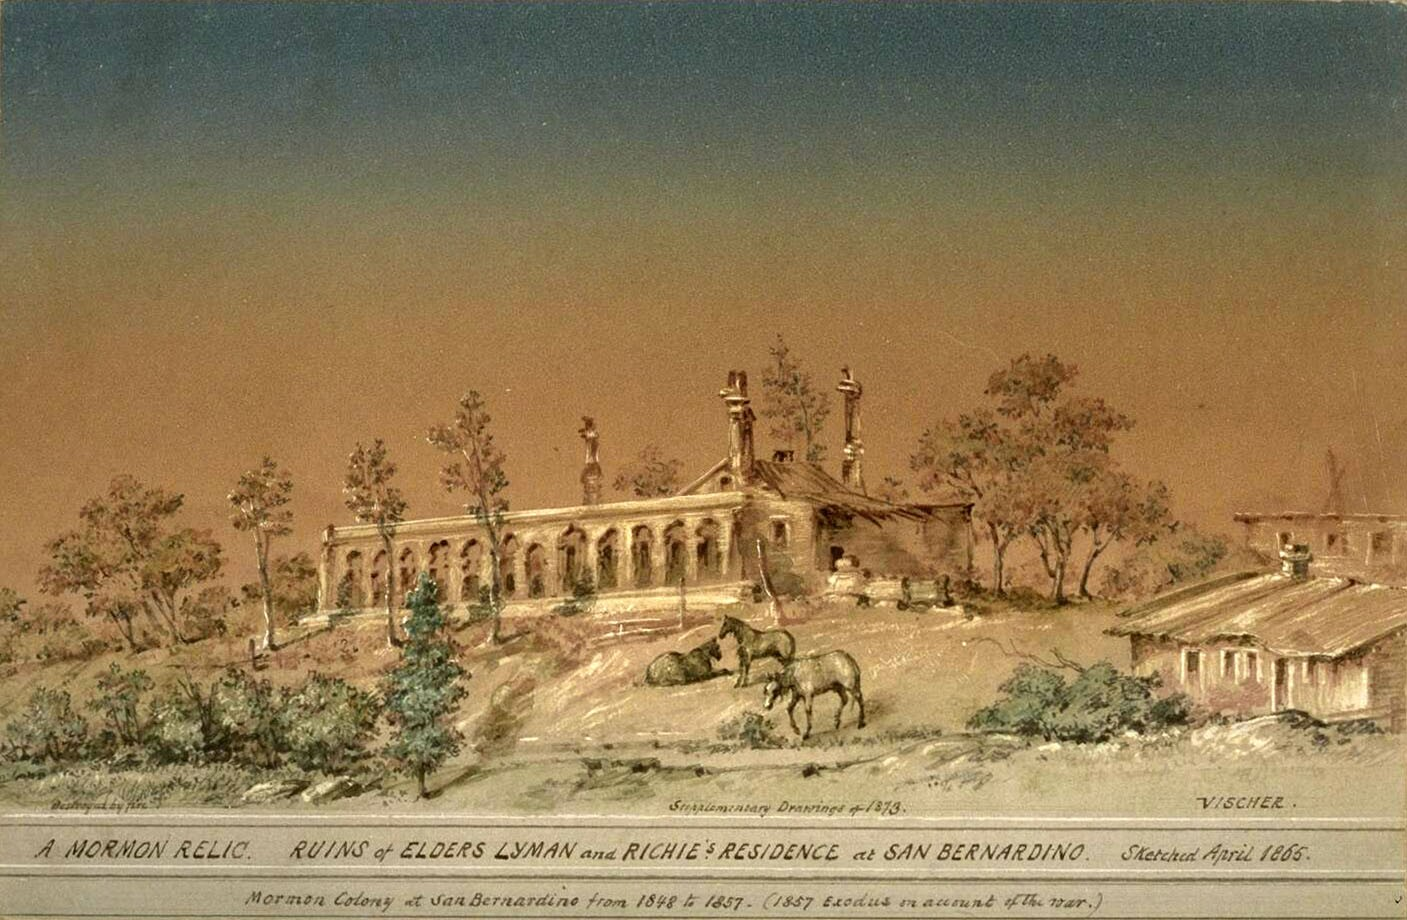 An 1873 drawing by Edward Vischer of what then remained of Lyman's and Rich's residences. Courtesy of the Mission Era: California Under Spain and Mexico and Reminiscences collection, Bancroft Library, UC Berkeley.